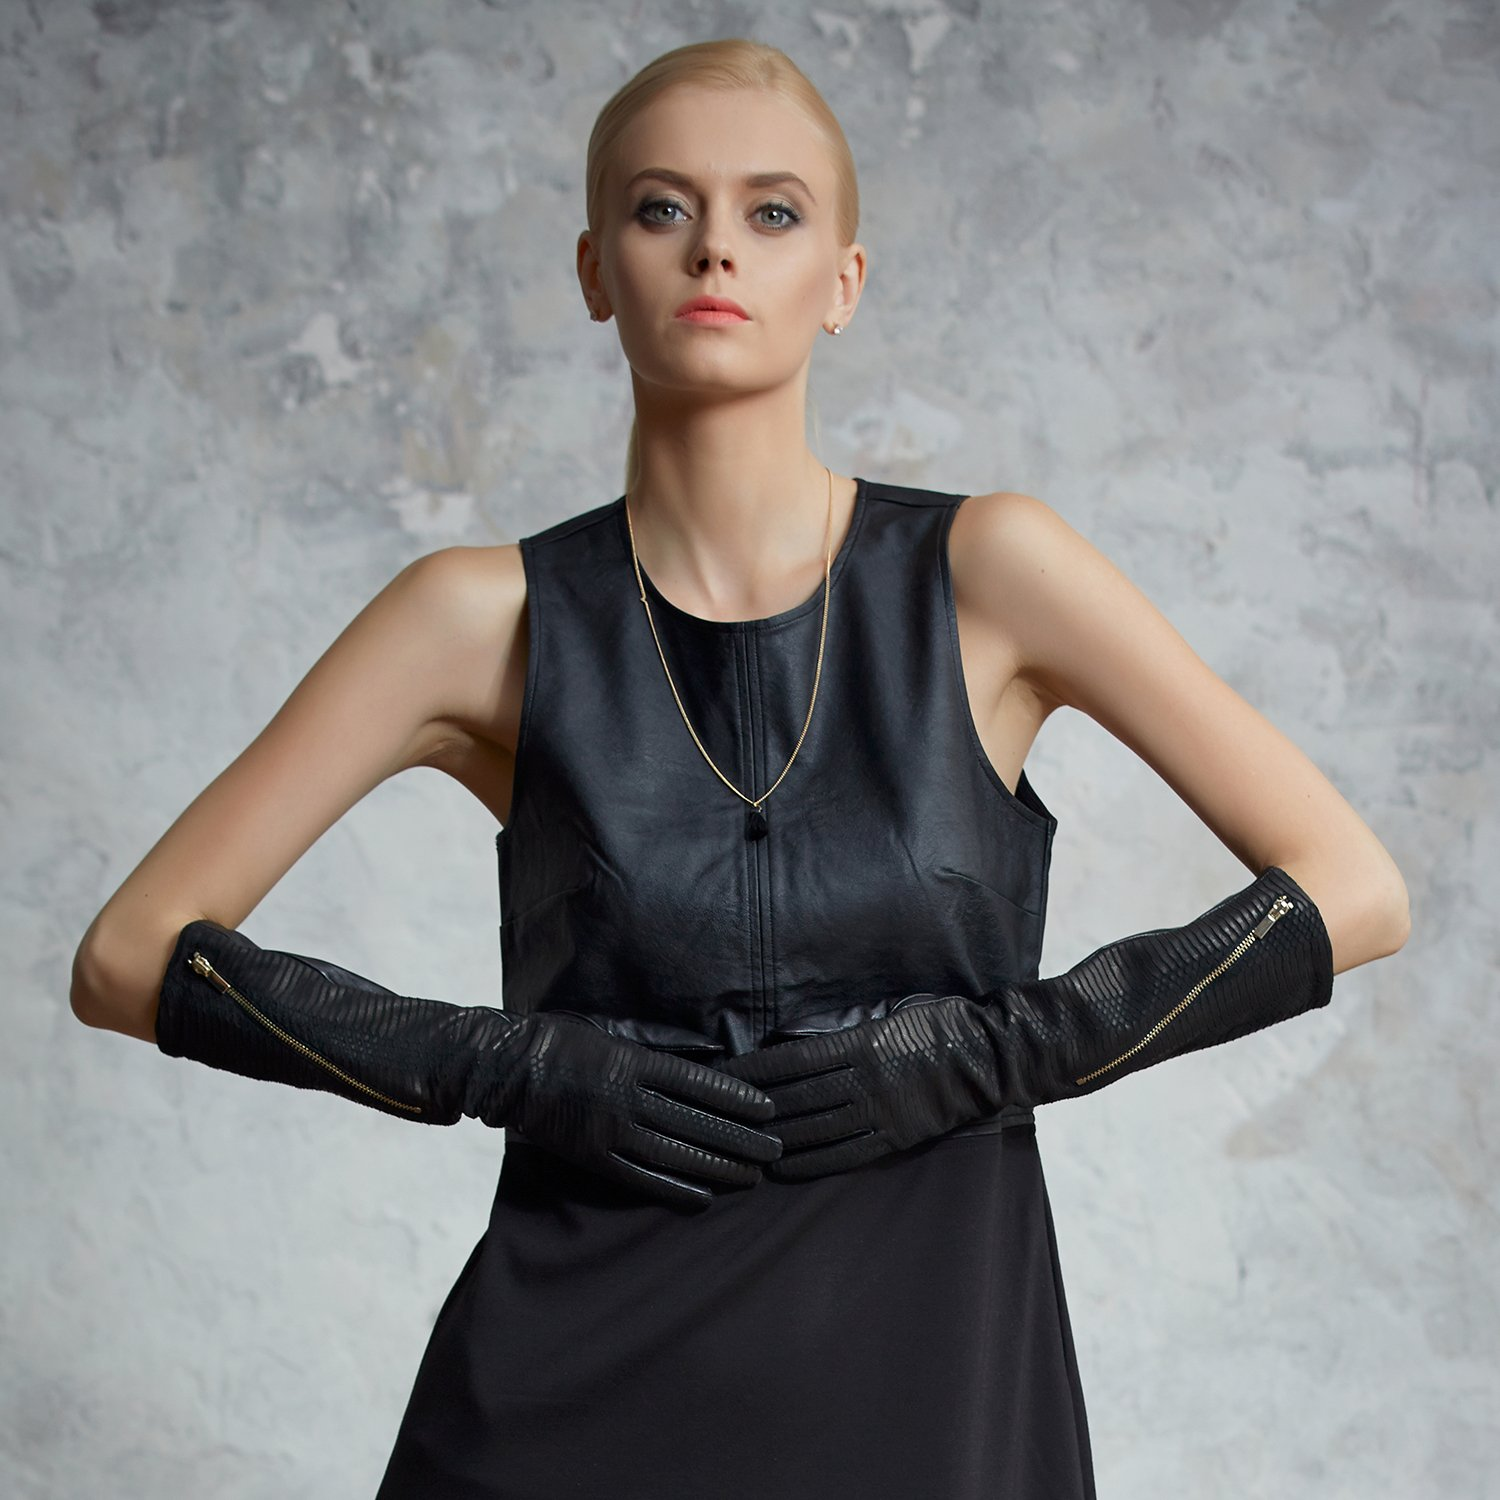 Fioretto Womens Long Italian Leather Gloves Opera Length Winter Warm Gloves Evening Party Dress Gloves Black by Fioretto (Image #2)